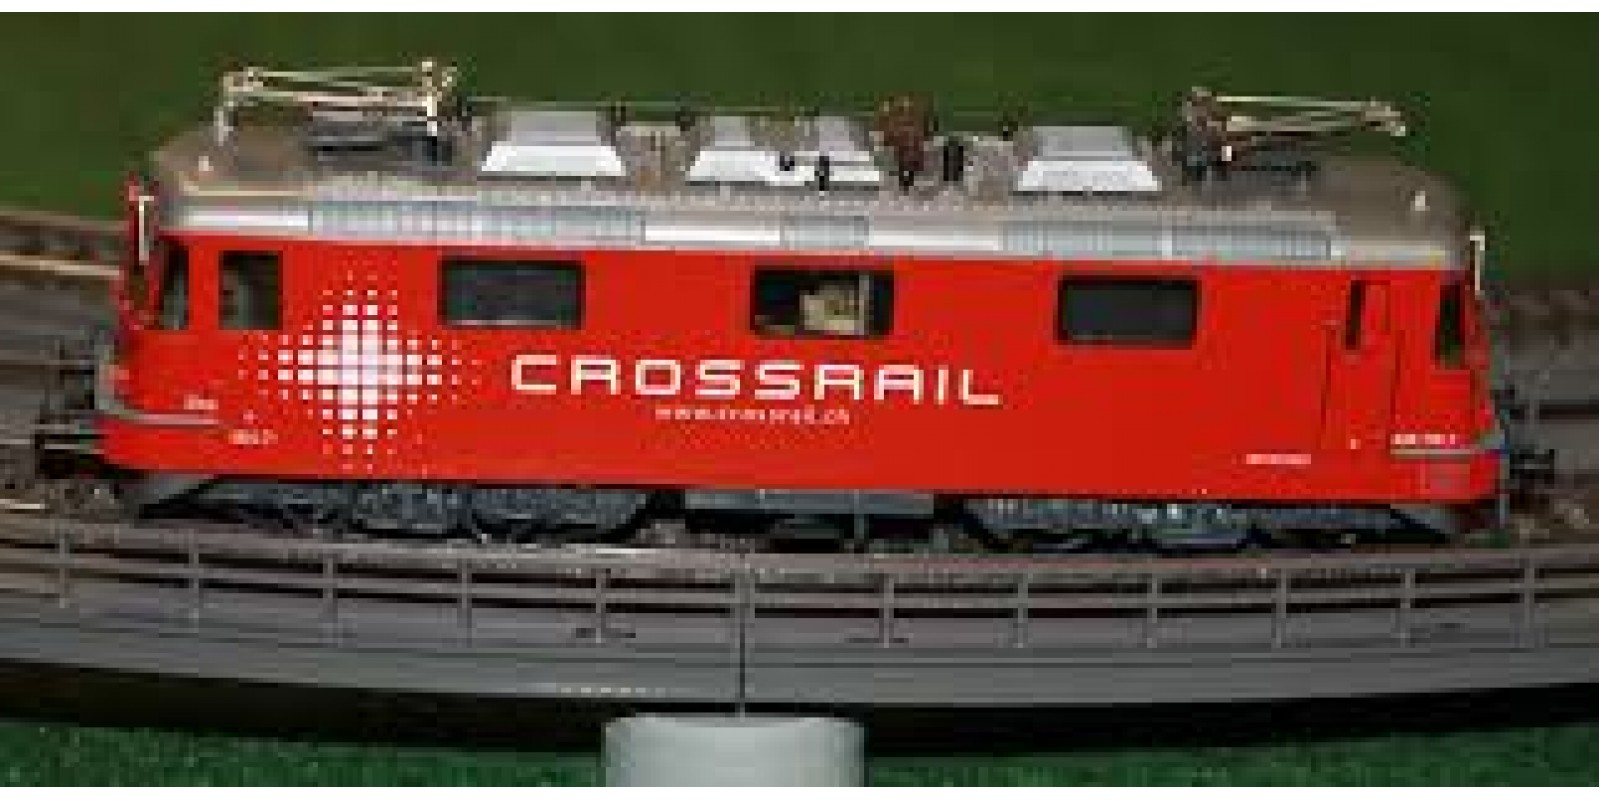 HA16225-32  Re 436 Crossrail rot Zita 436112-7 AC digital with sound  VERY SHORT IN STOCK